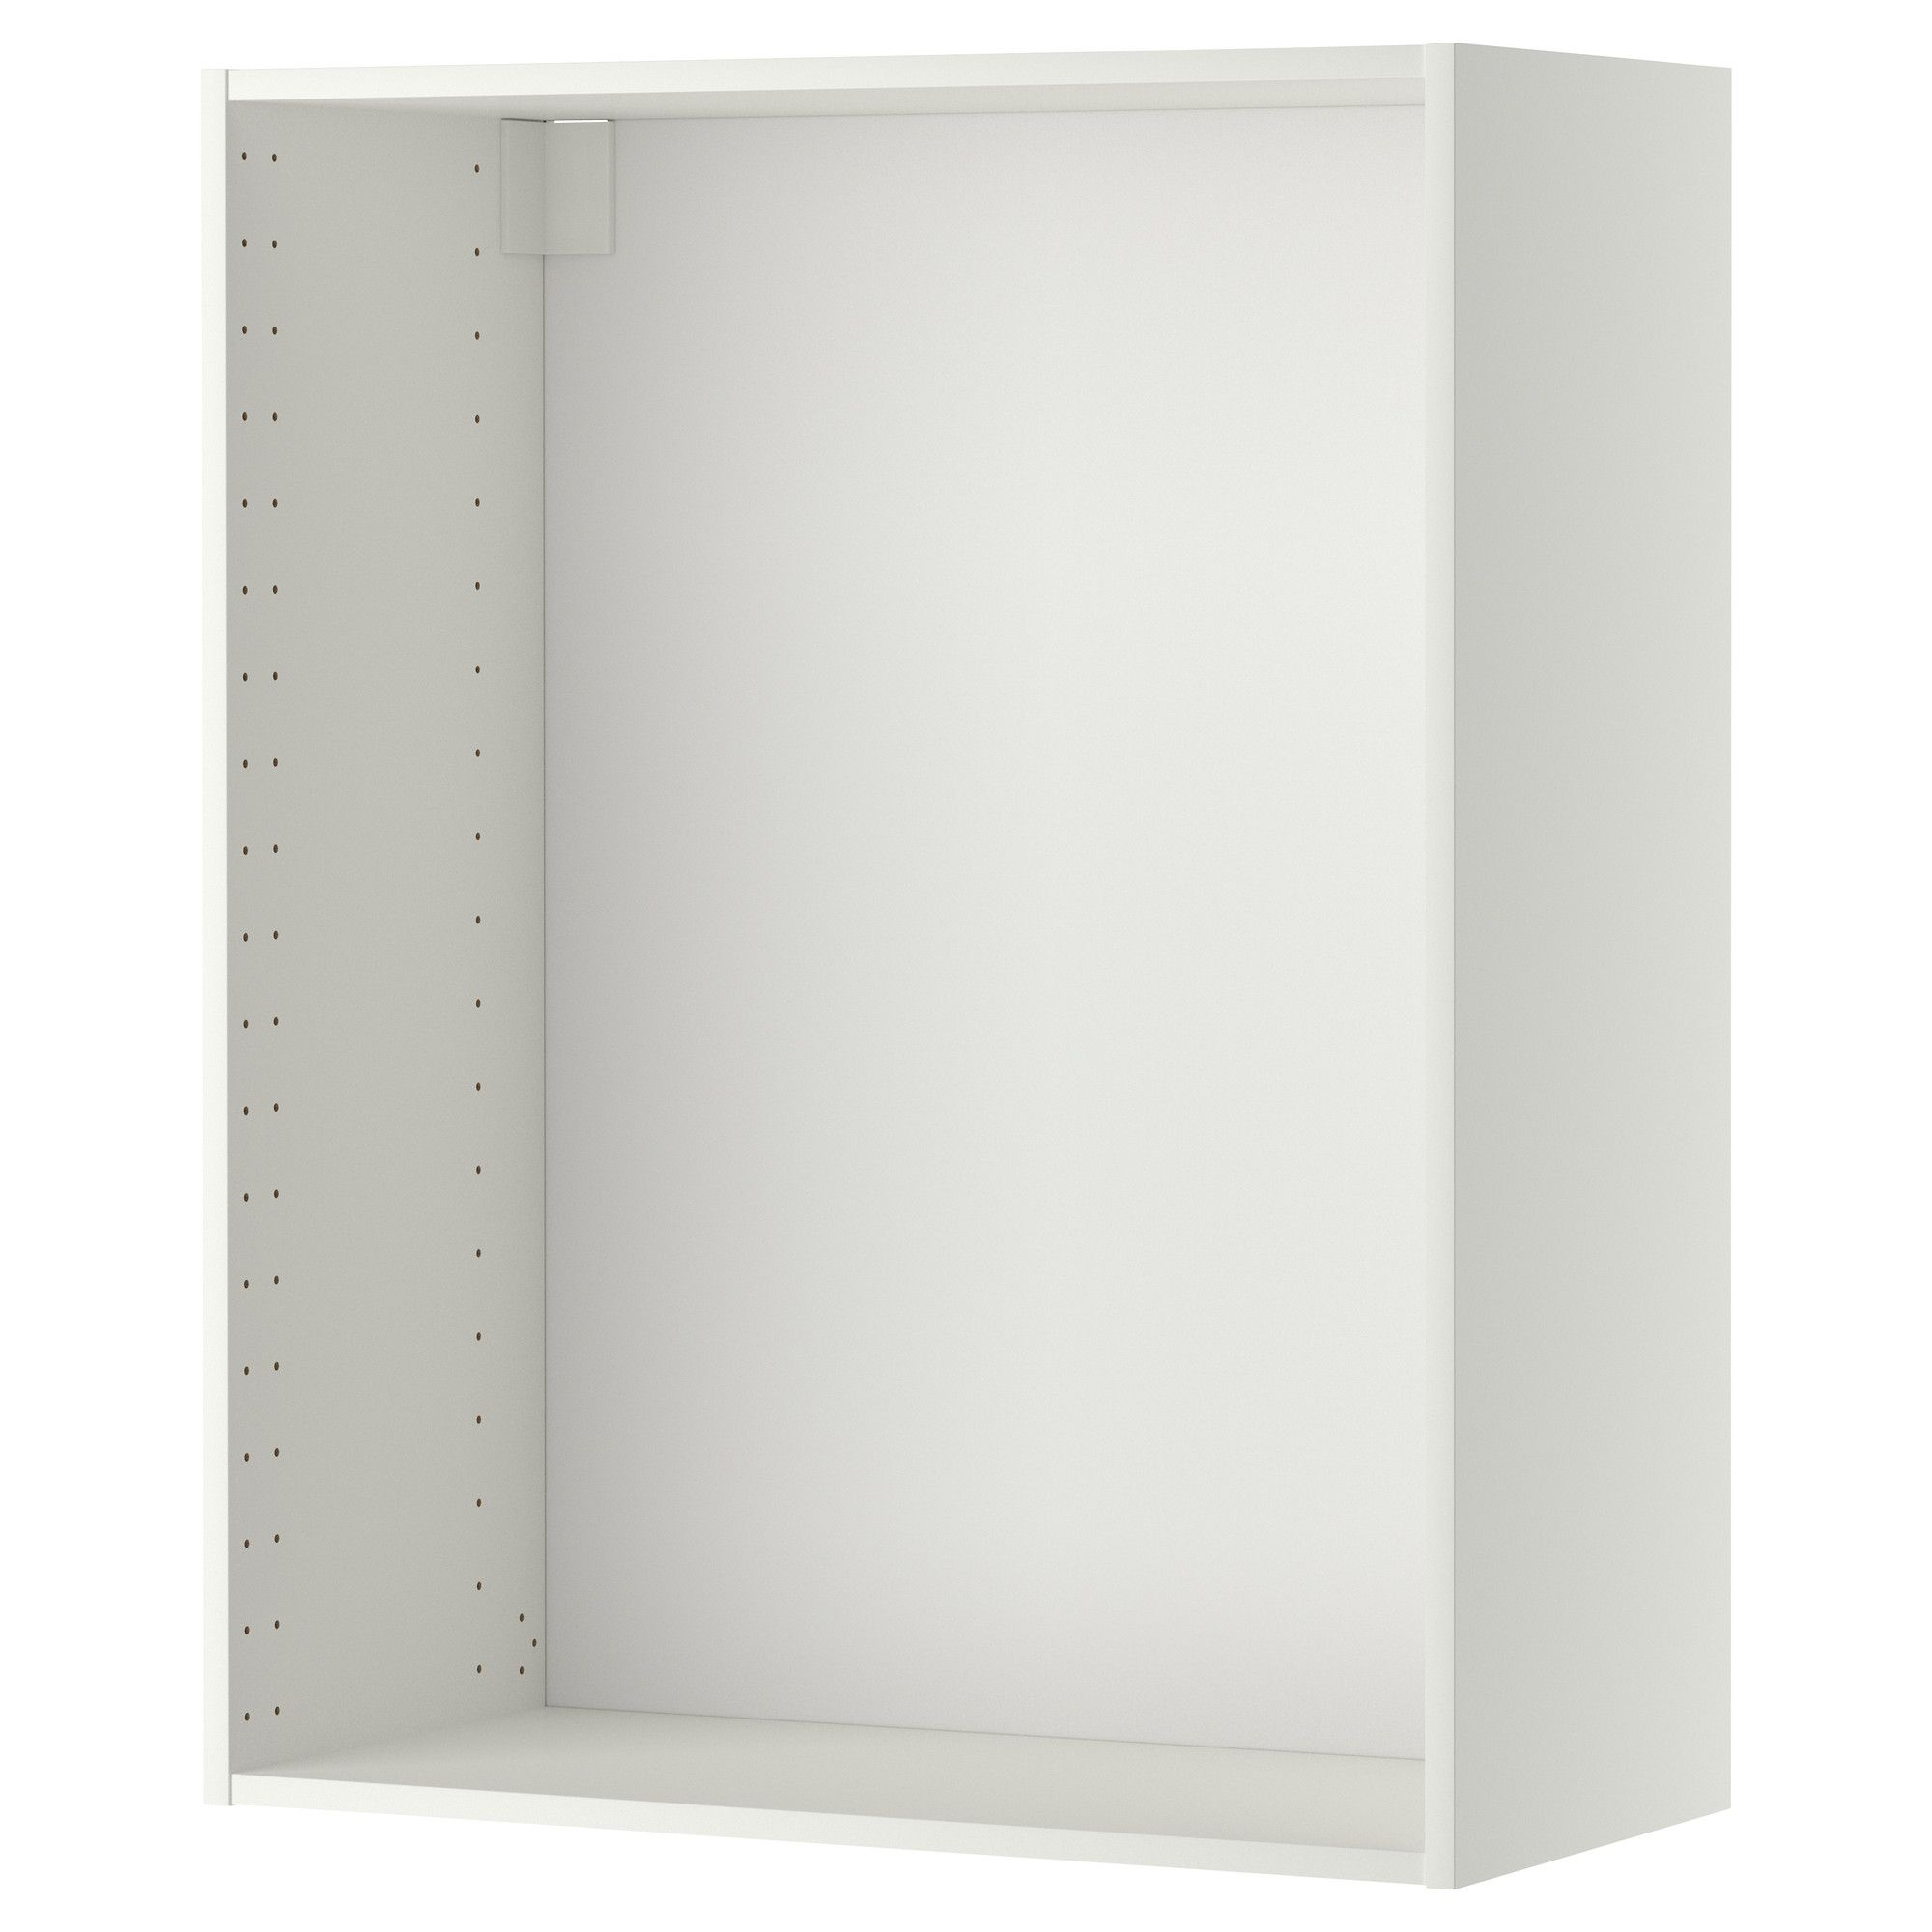 Shop For Furniture Home Accessories More Ikea Wall Cabinets